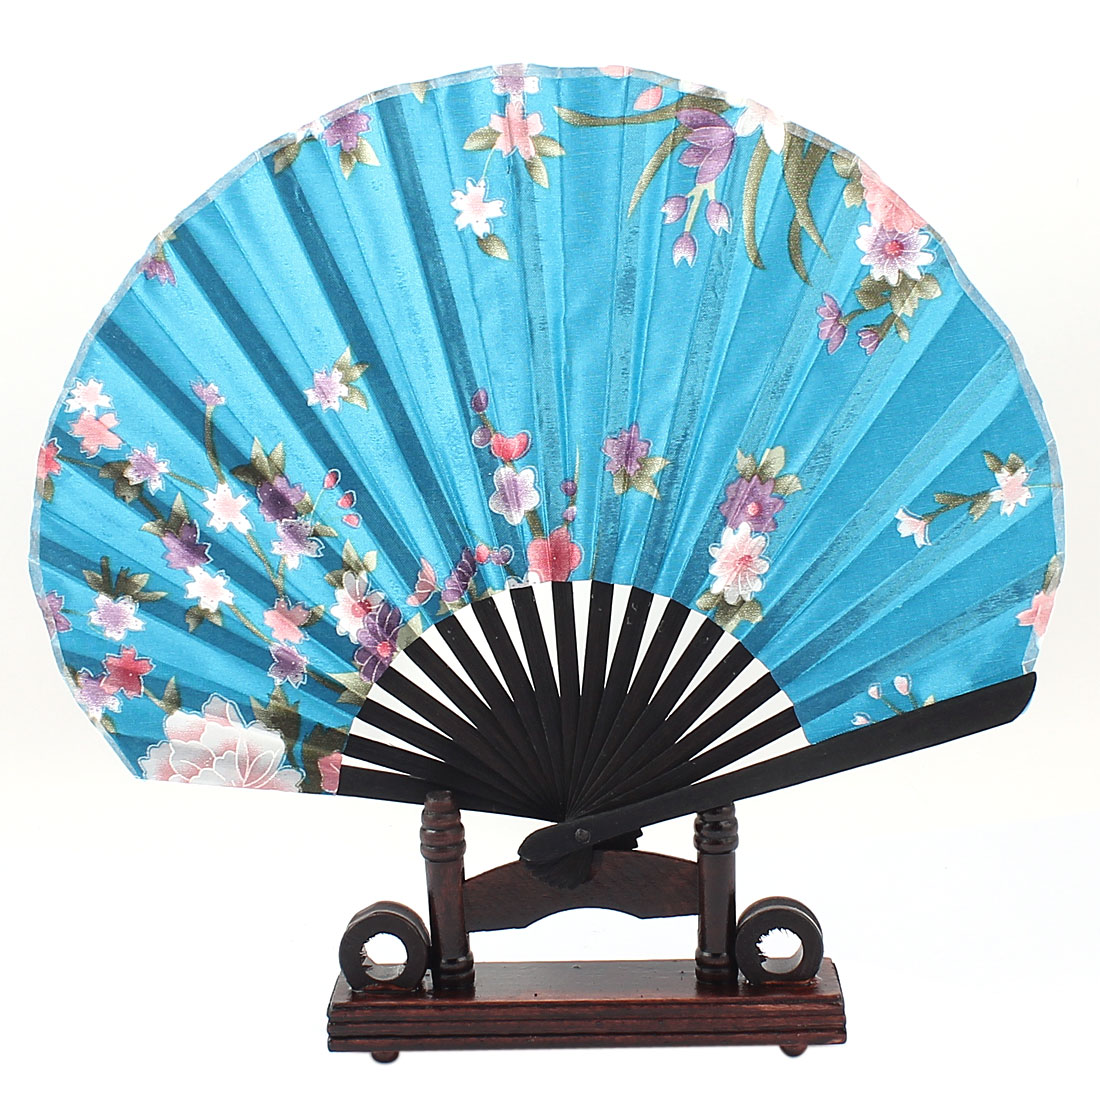 Home Decor Bamboo Ribs Blooming Flower Pattern Blue Fabric Cloth Folding Hand Fan w Wooden Holder